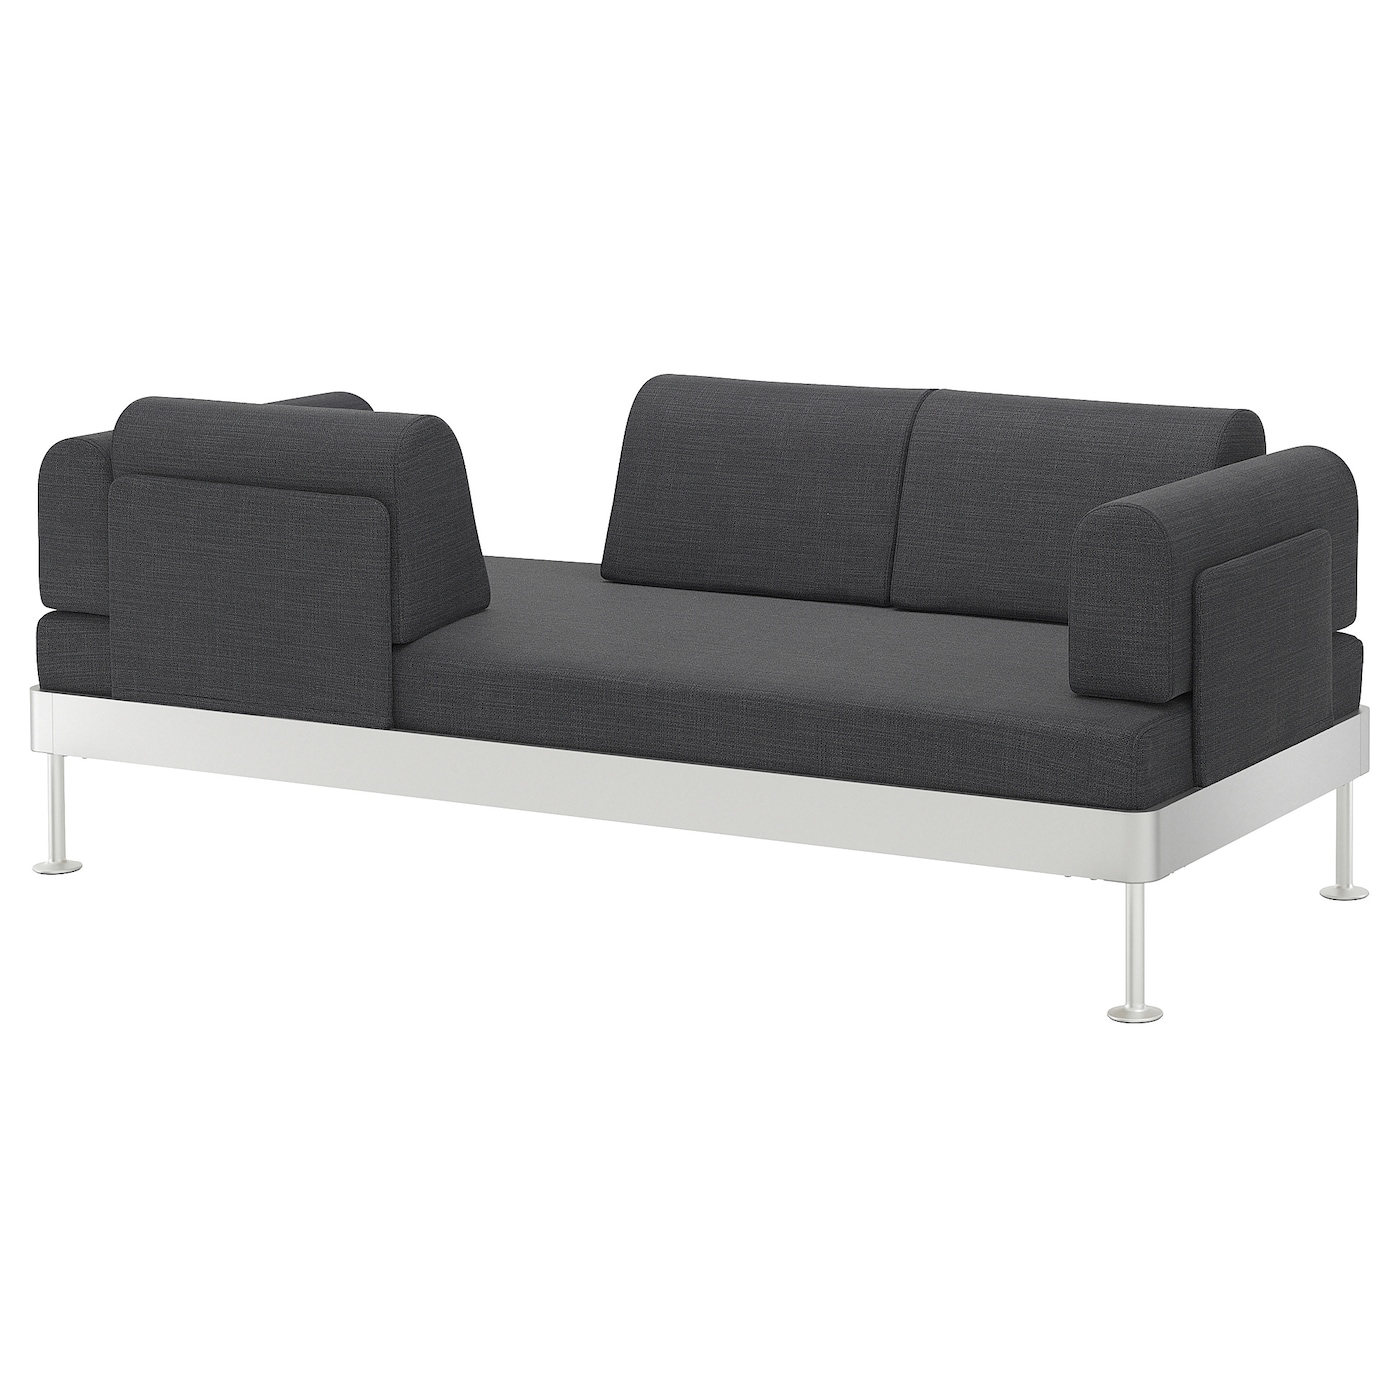 delaktig 3 seat sofa hillared anthracite ikea. Black Bedroom Furniture Sets. Home Design Ideas